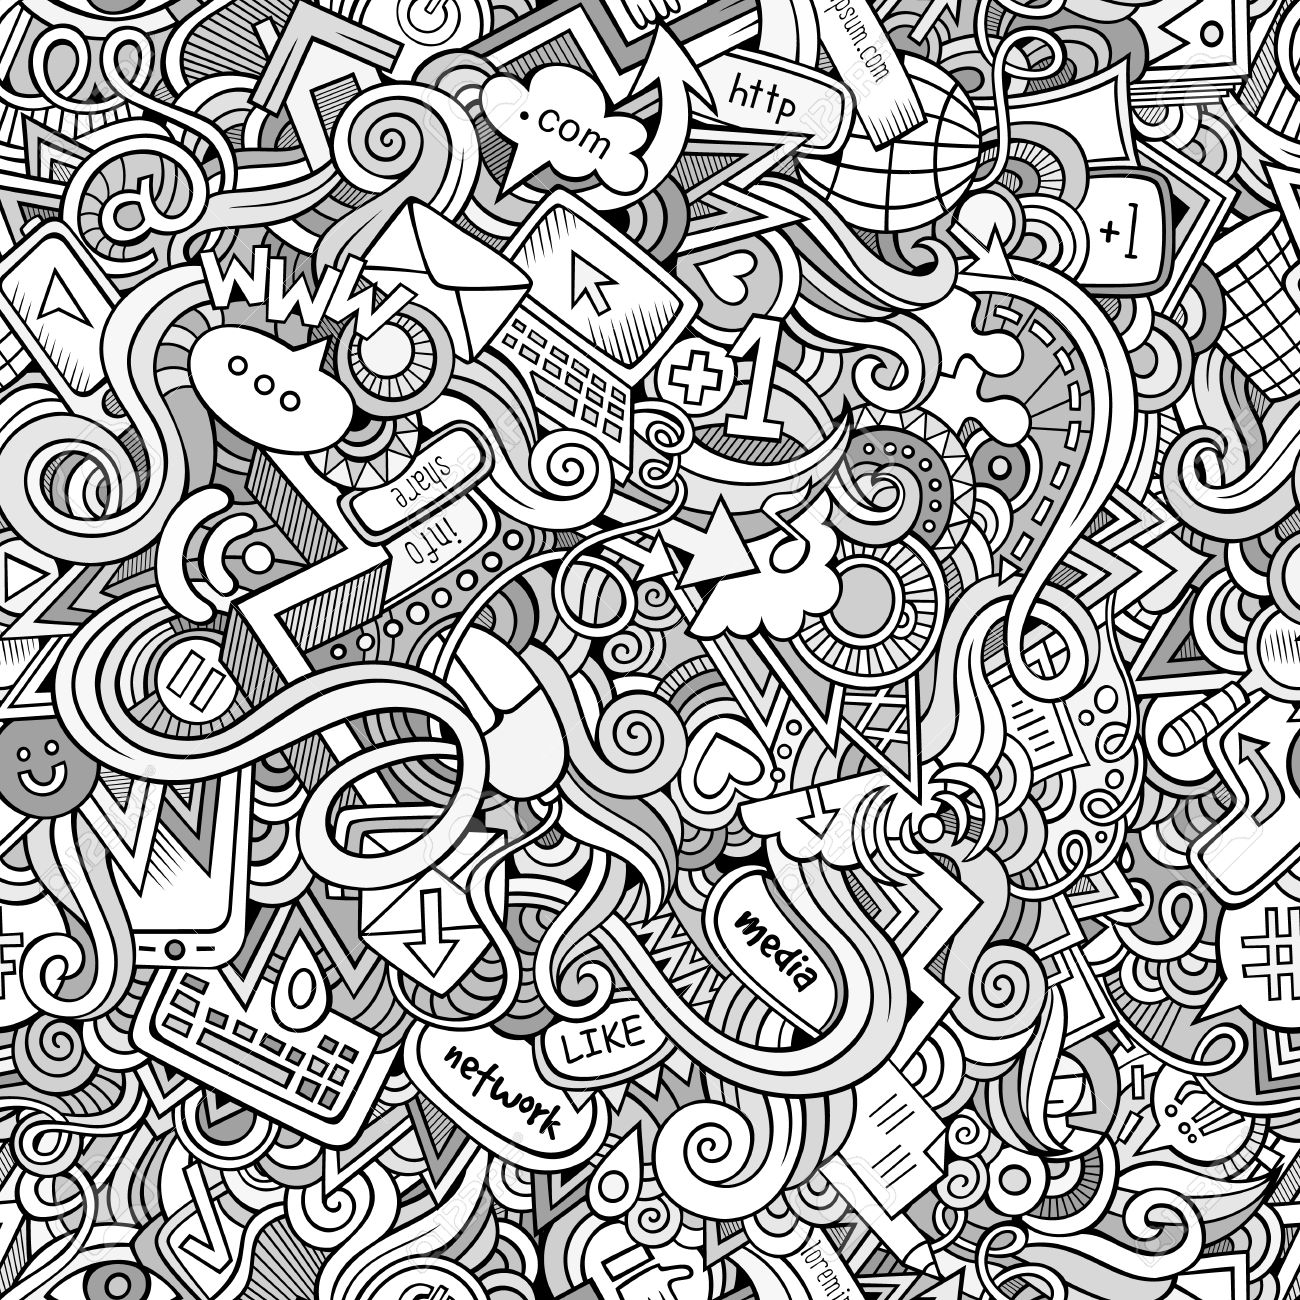 1300x1300 Cartoon Doodles On The Subject Of Internet Social Media Theme